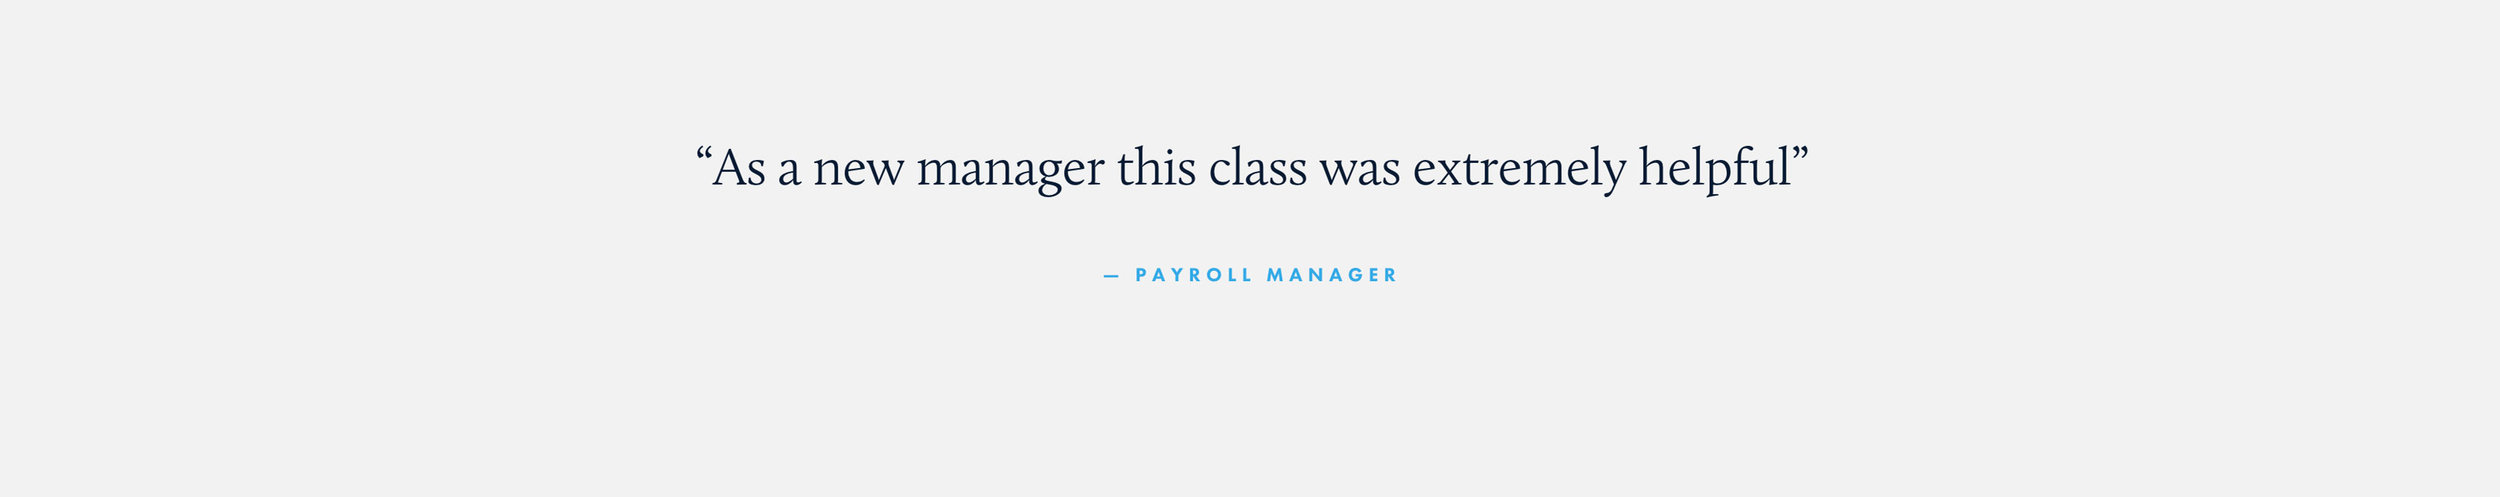 Payrollmanager.jpg